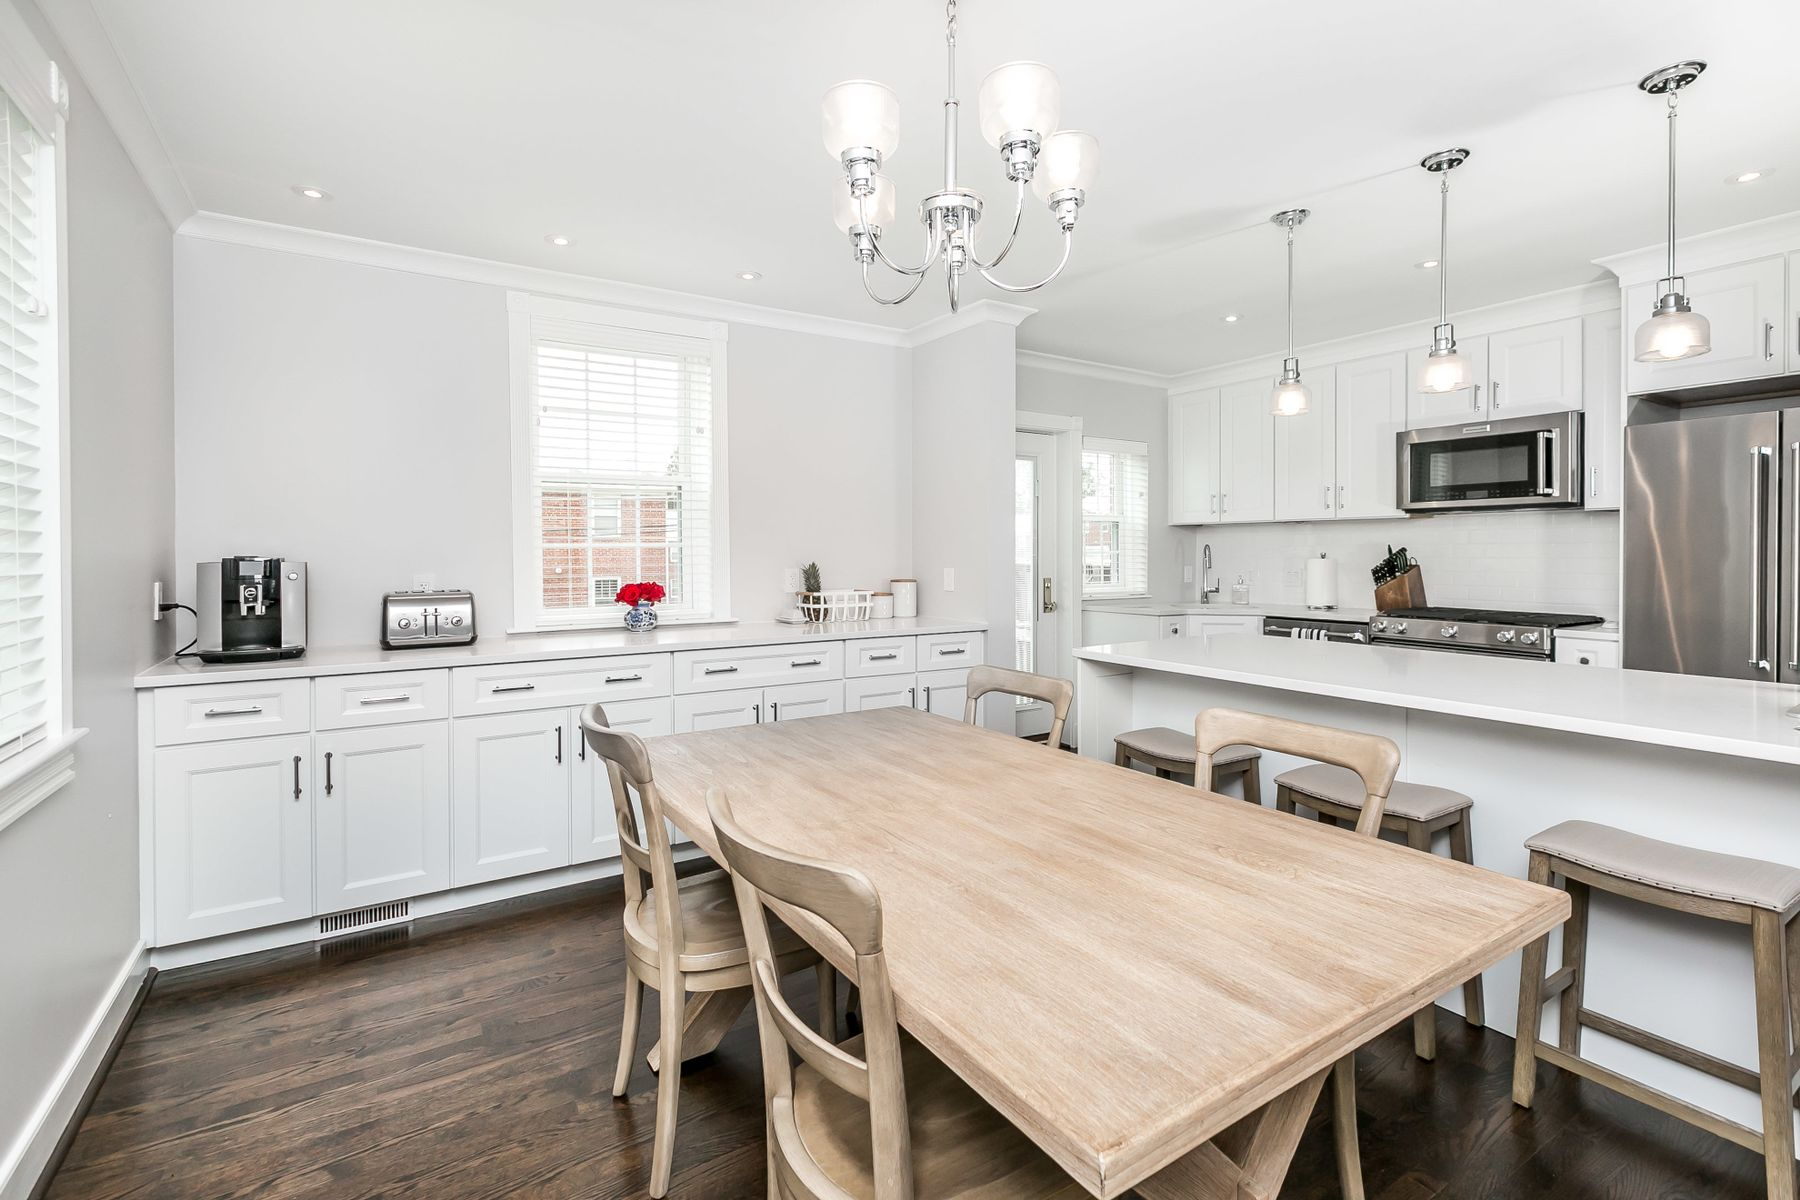 Kitchen view with table and granite counter tops